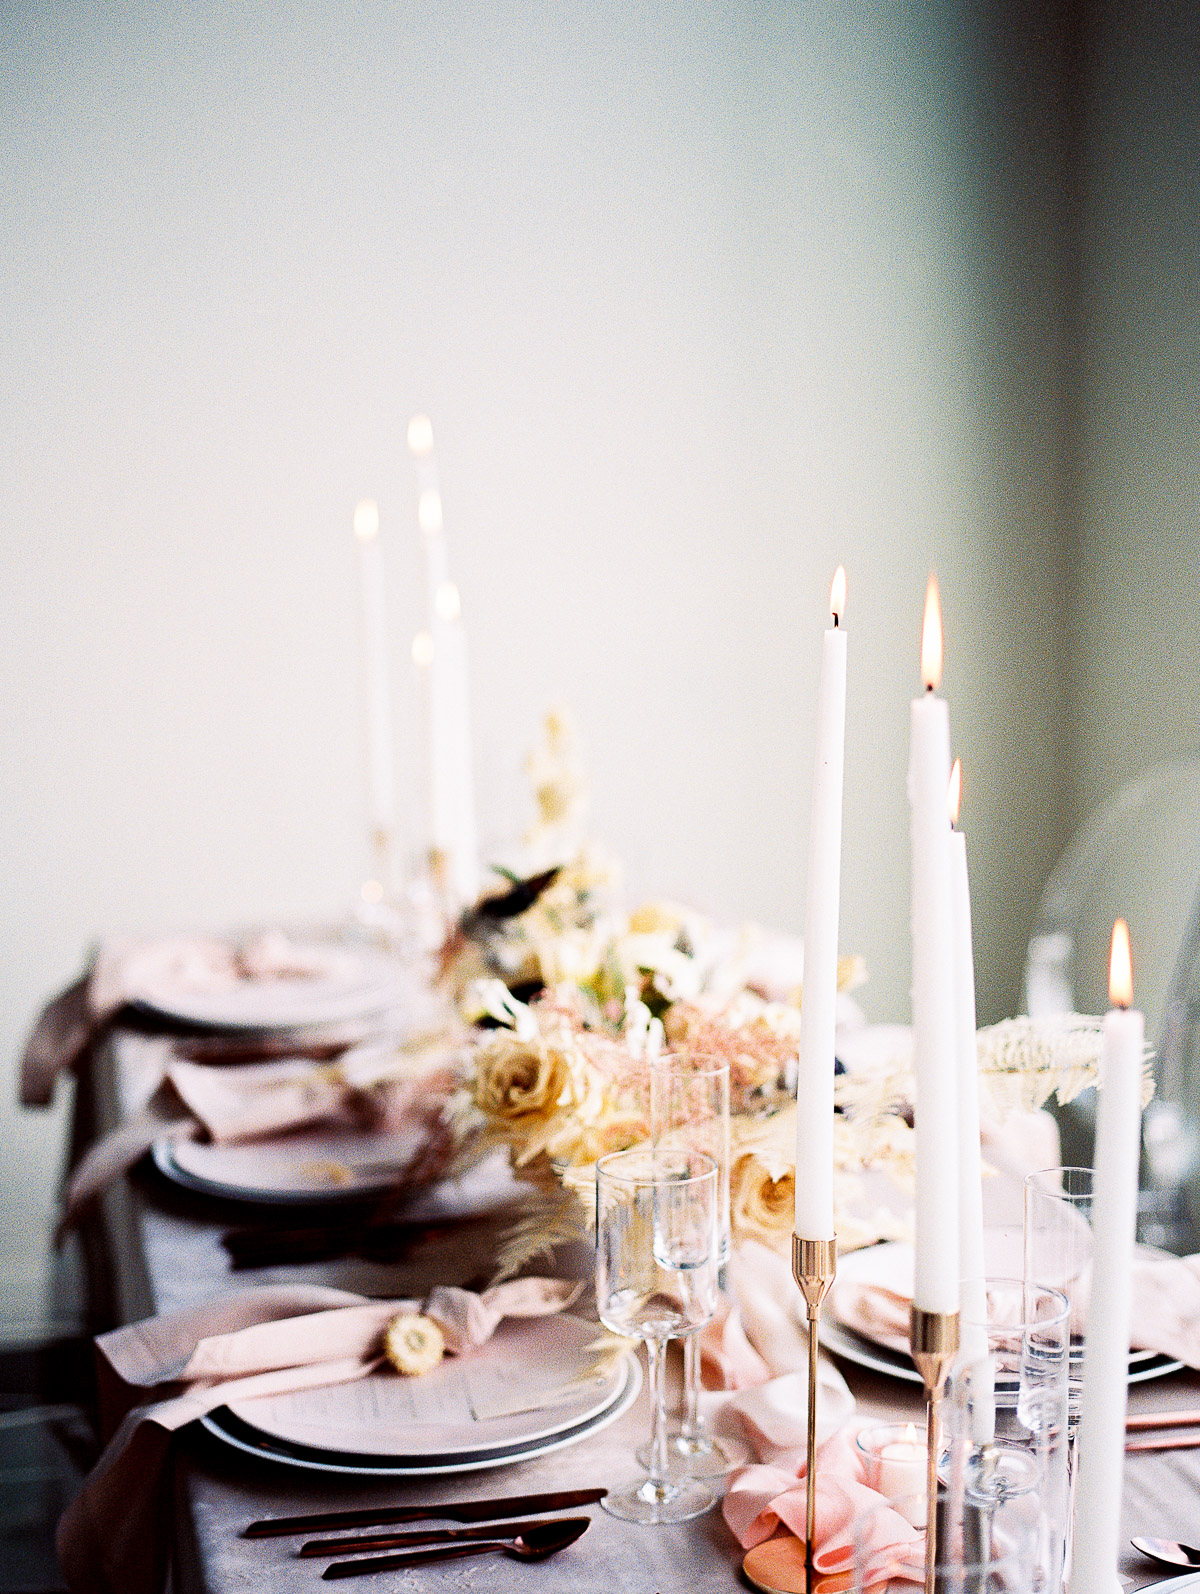 A long table laid for wedding guests, with a gorgeous centerpiece and tall lit candles